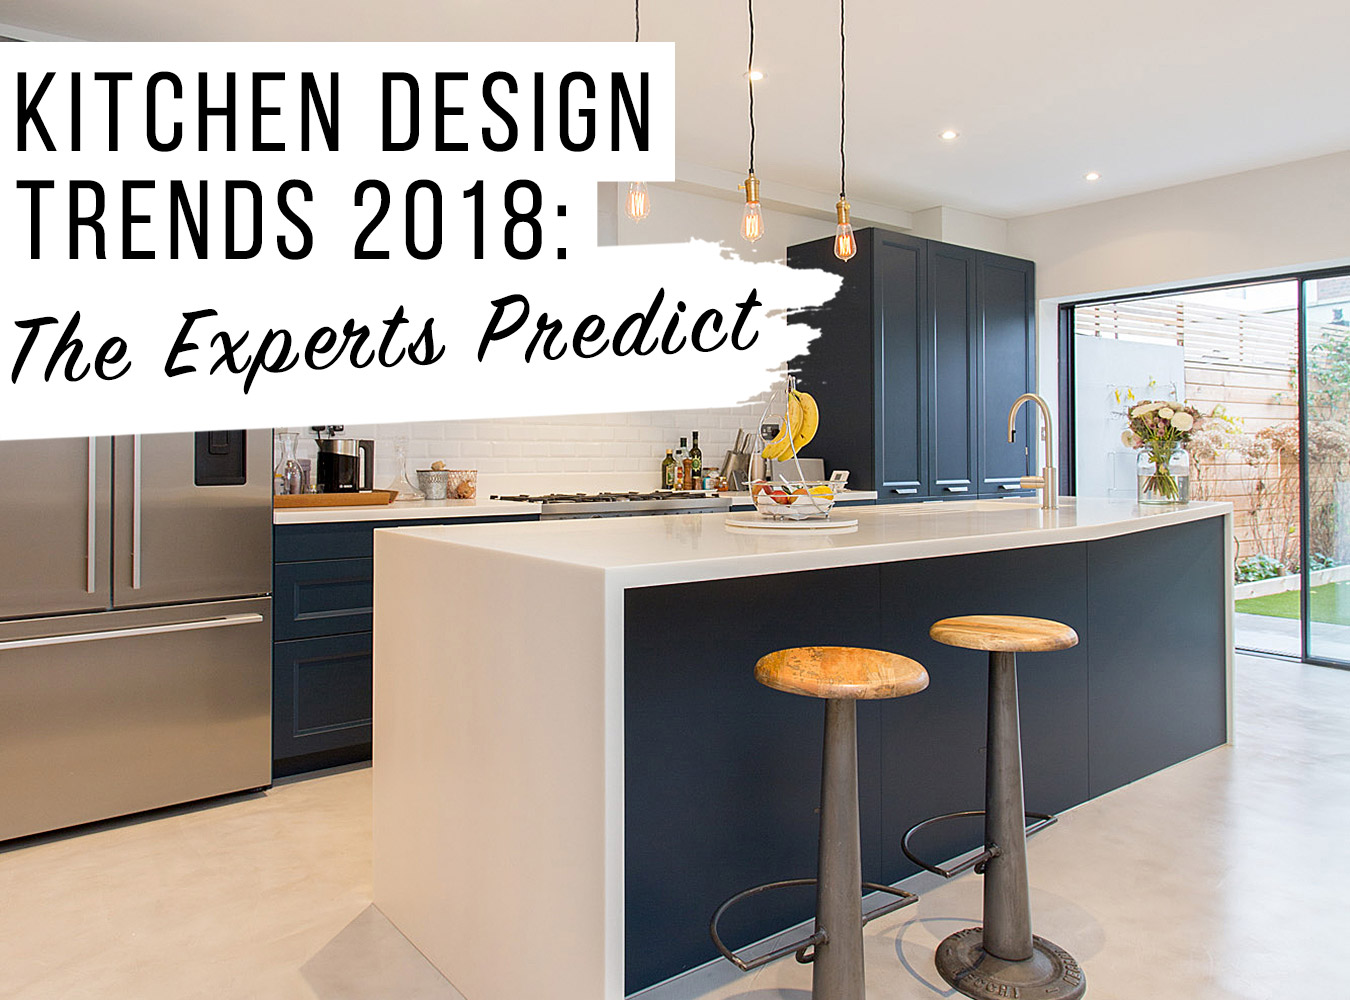 Kitchen Trends 2018: The Experts Predict - The LuxPad